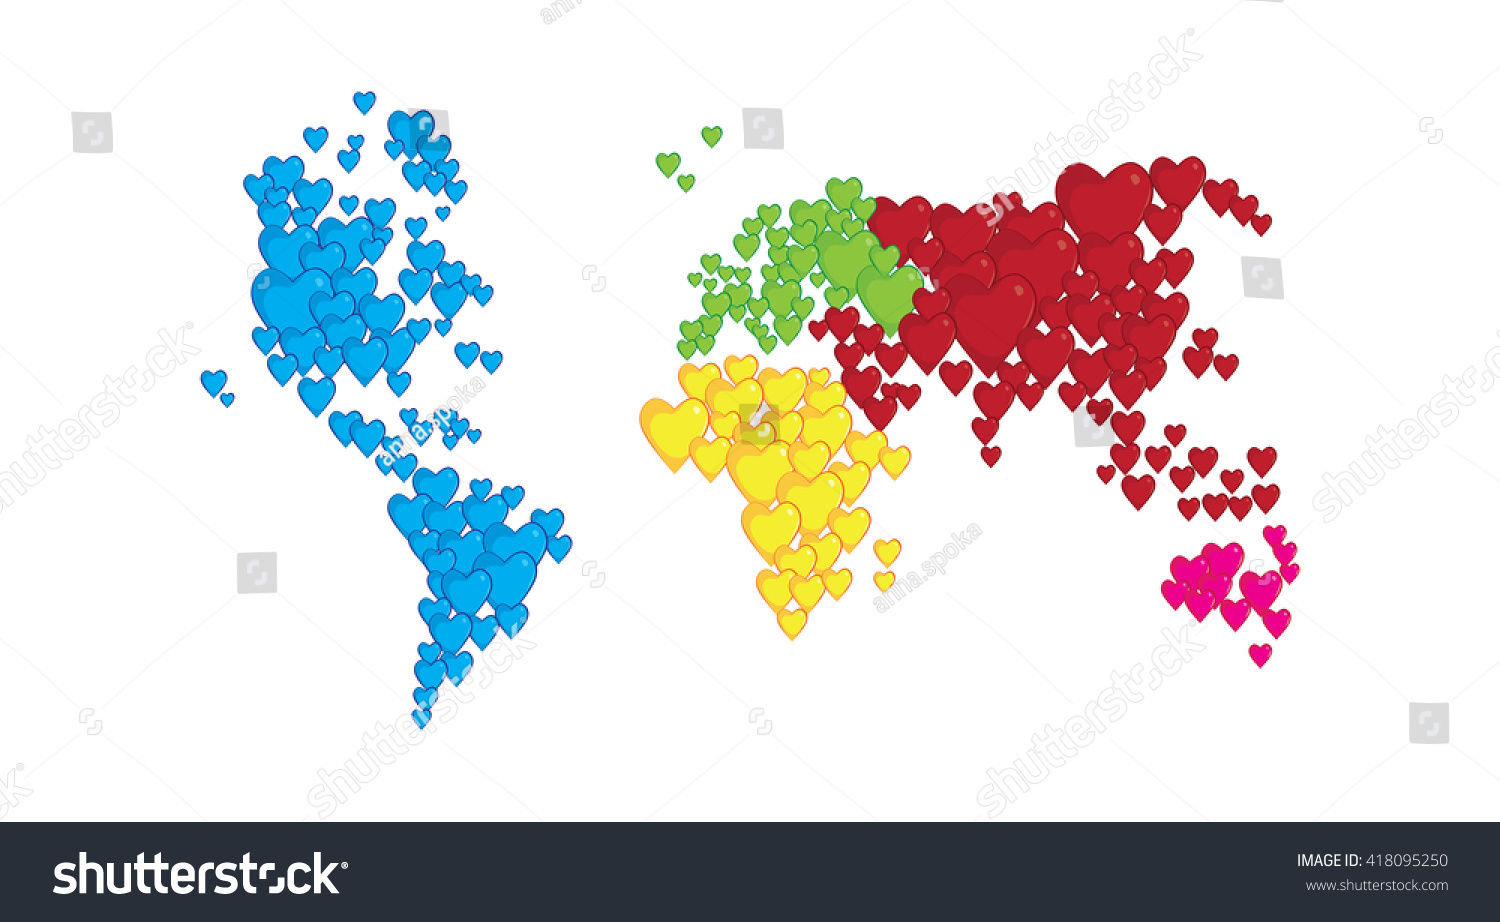 World map shapes heart concept love vectores en stock 418095250 world map in shapes of heart concept of love and peace gumiabroncs Gallery